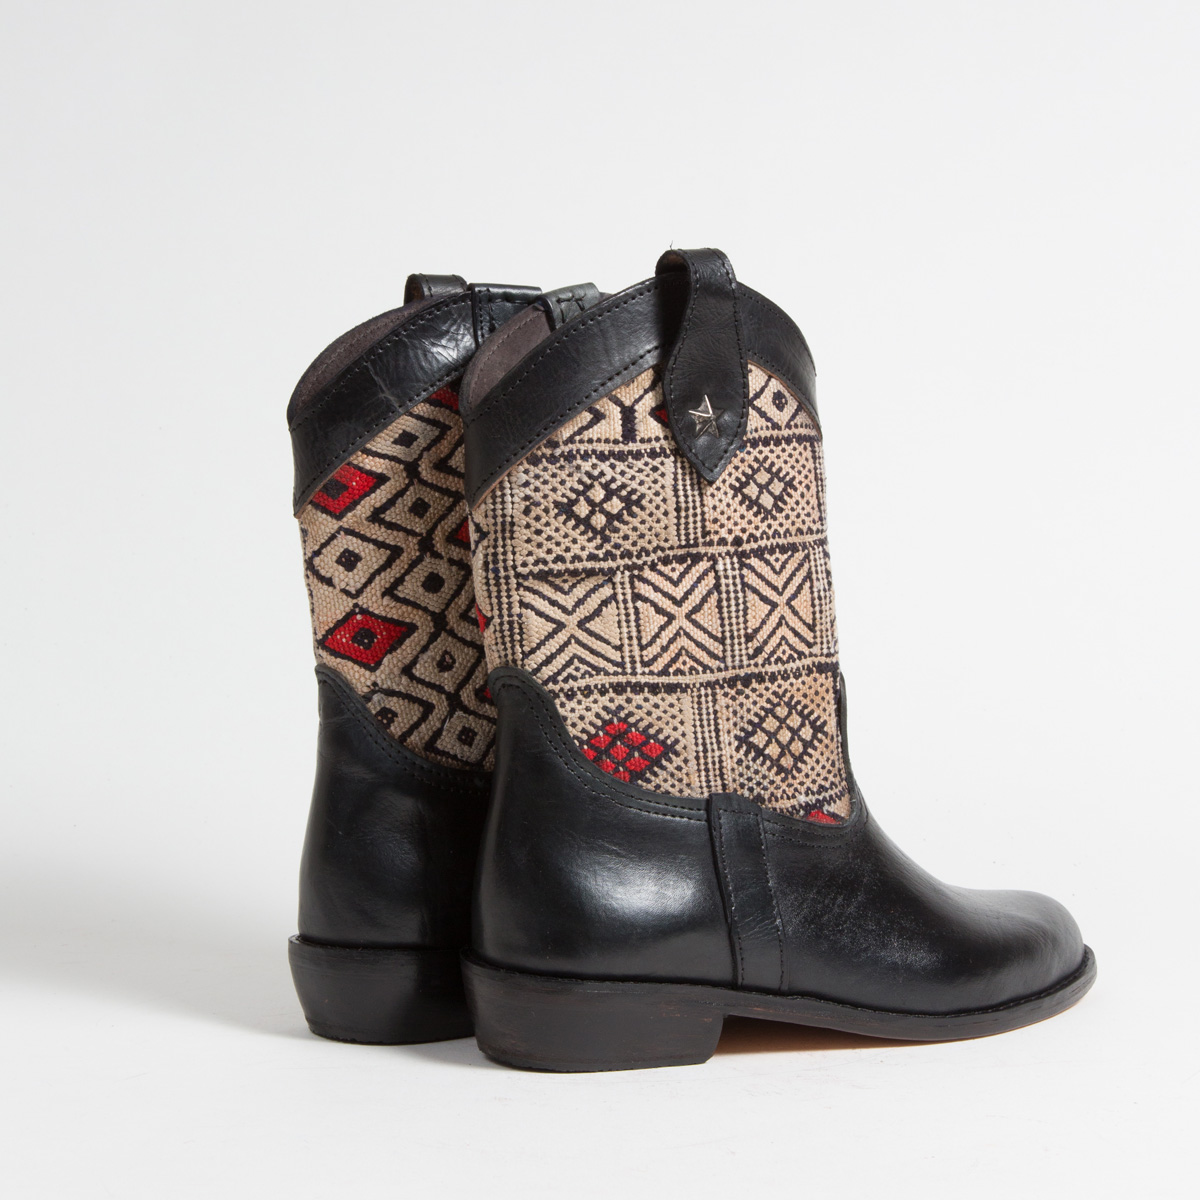 Bottines Kilim cuir mababouche artisanales (Réf. MN13-40)